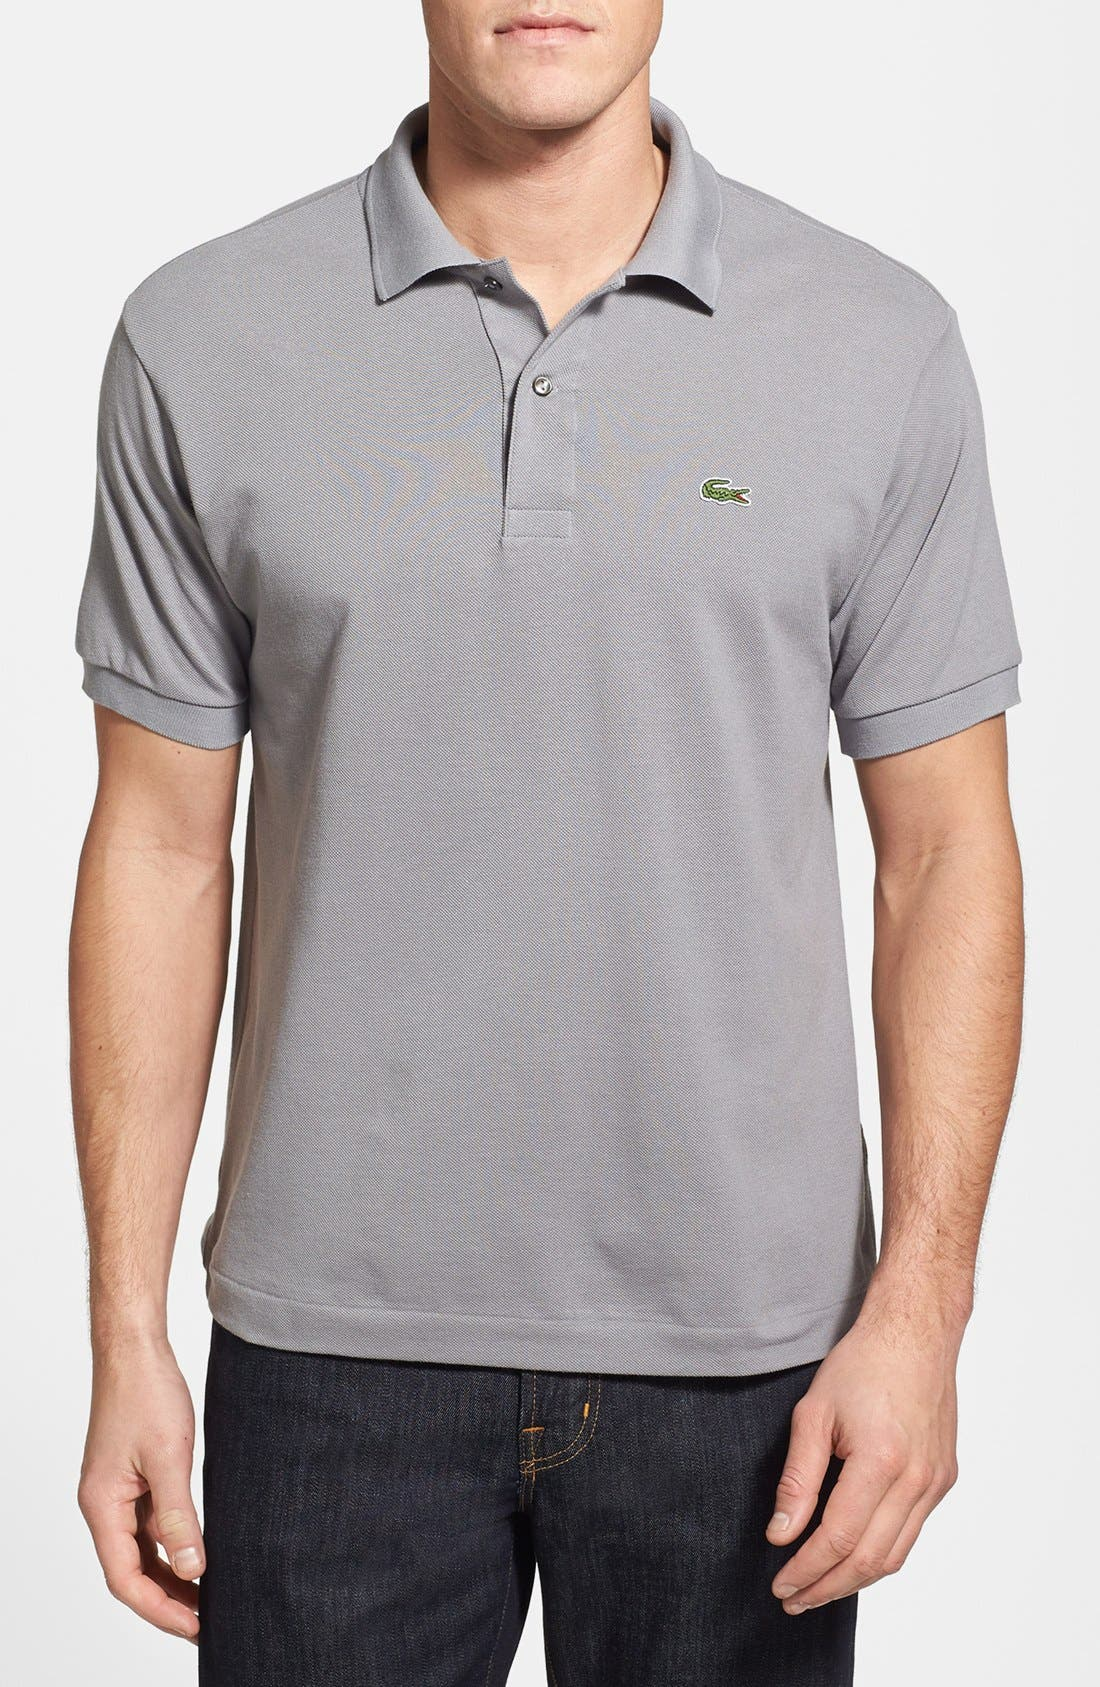 Mens Polo Shirts Nordstrom